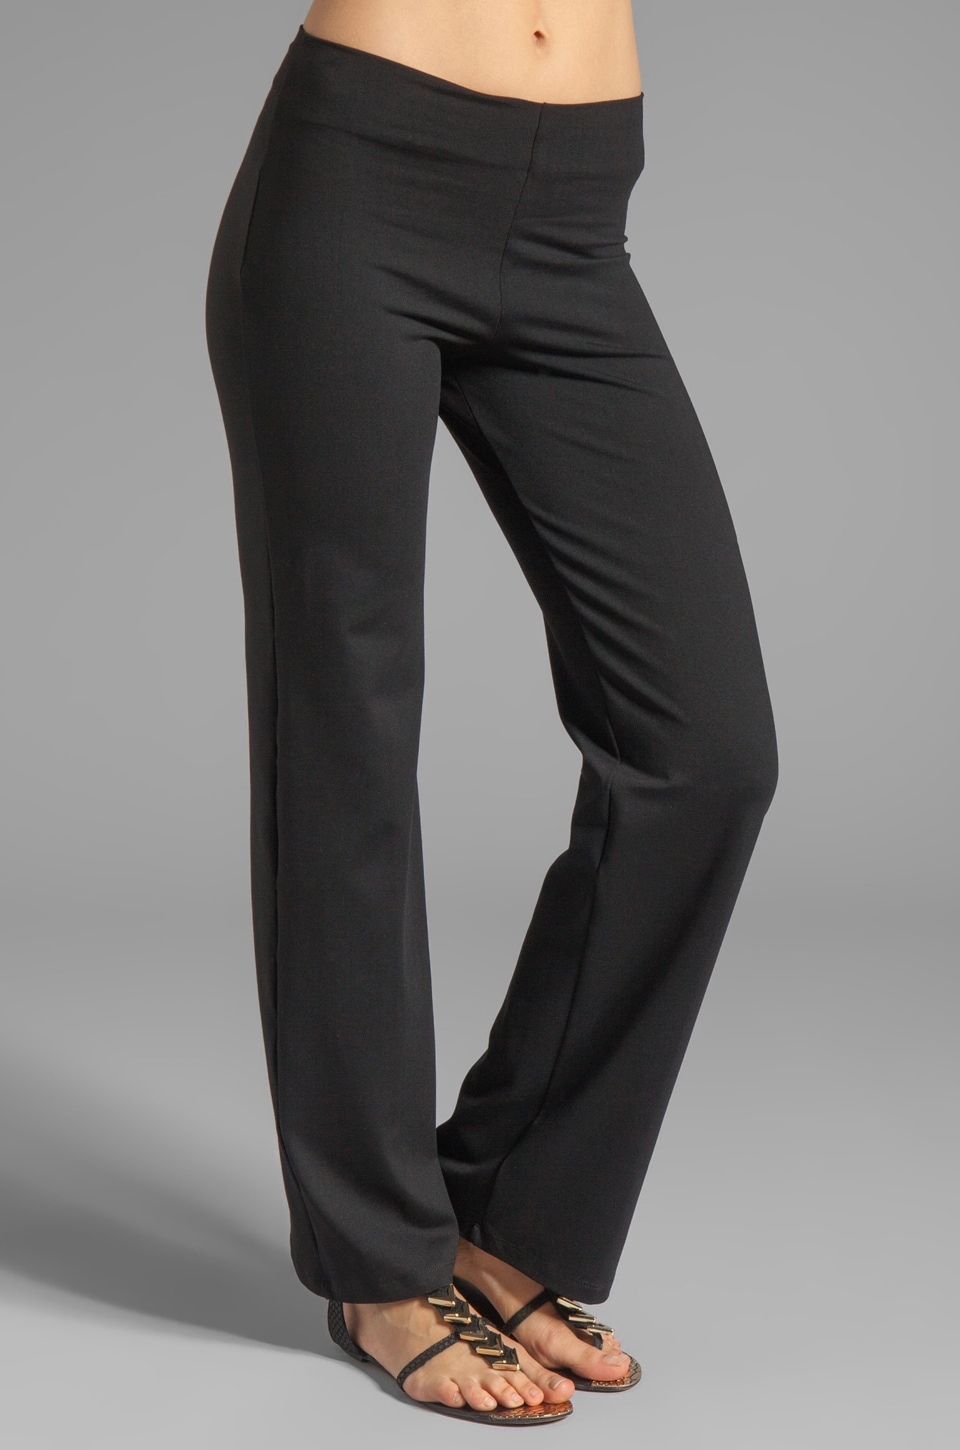 Susana Monaco Sailor Pant in Black